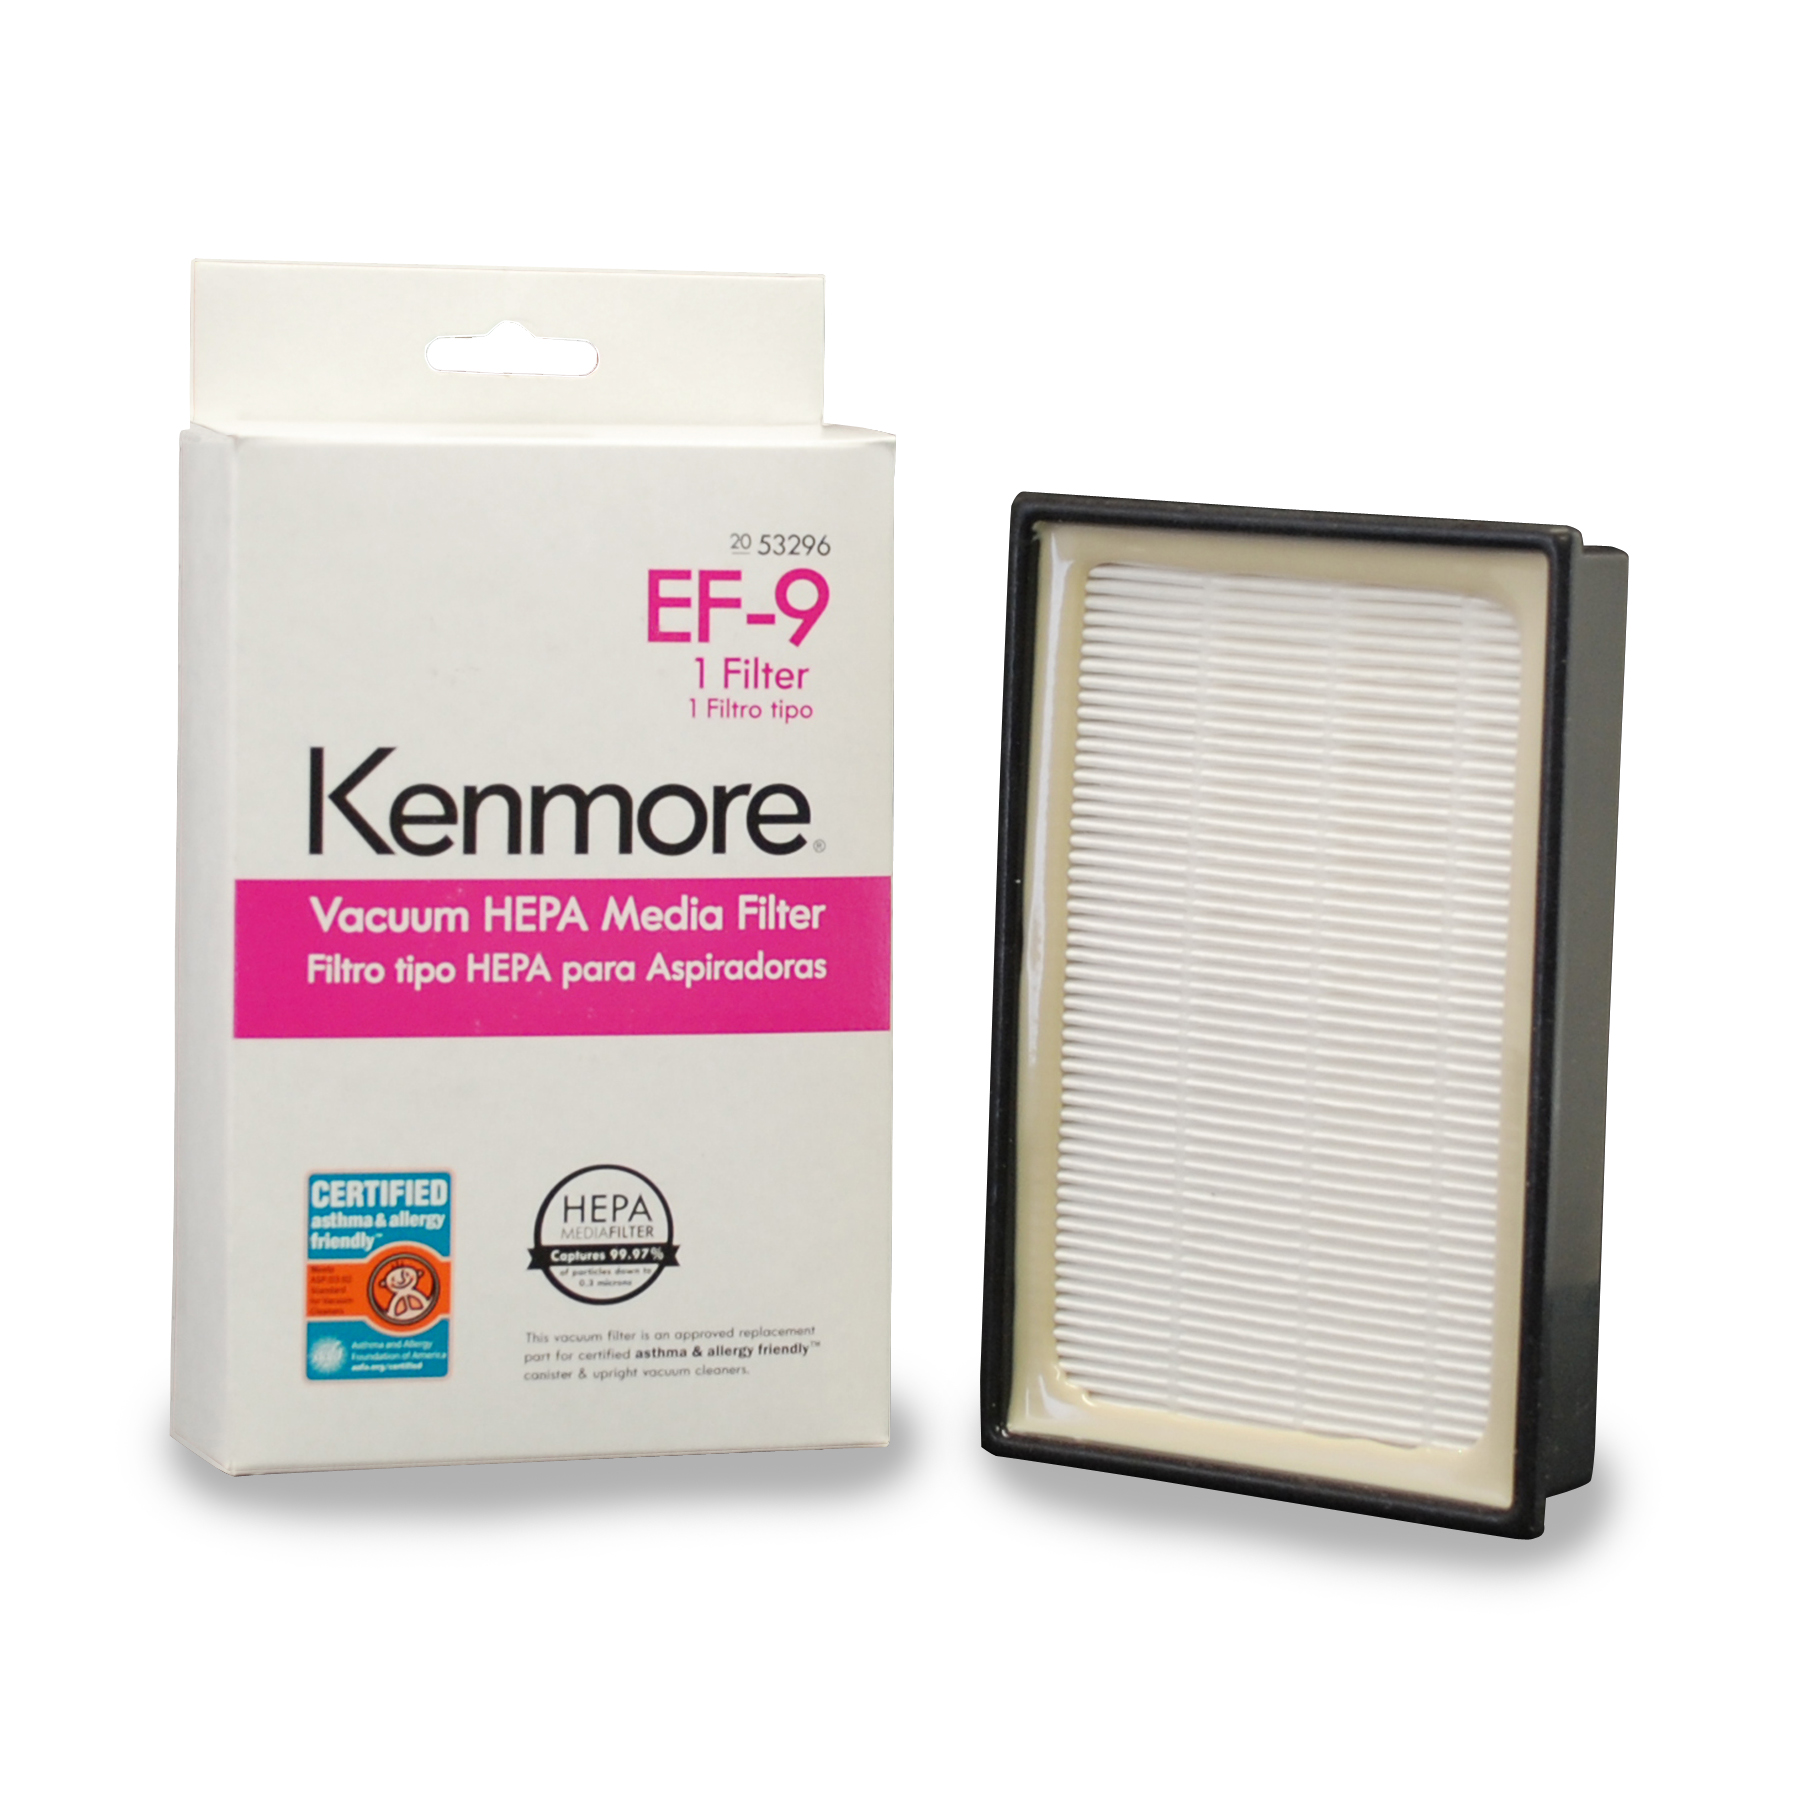 Kenmore 53296 HEPA Vacuum Media Filter EF-9